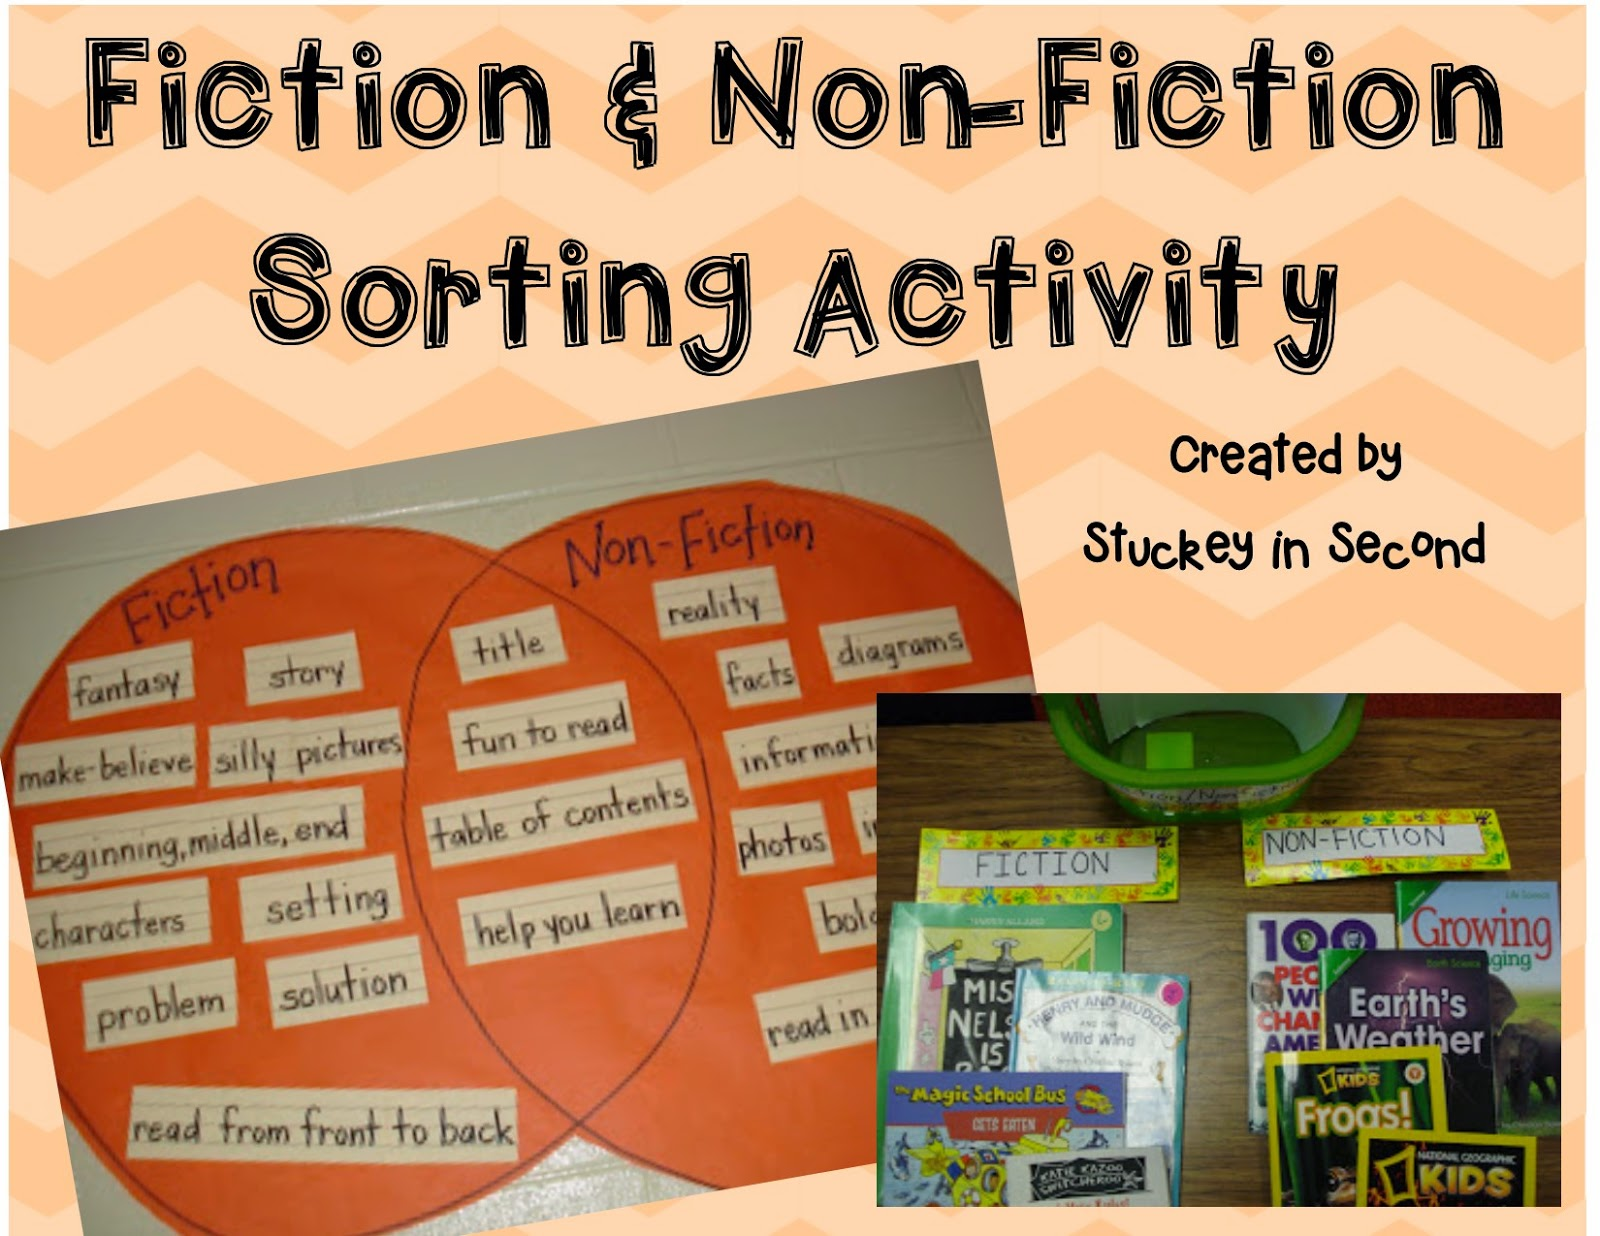 Stuckey In Second Throwback Thursday Fiction Non Fiction Reading